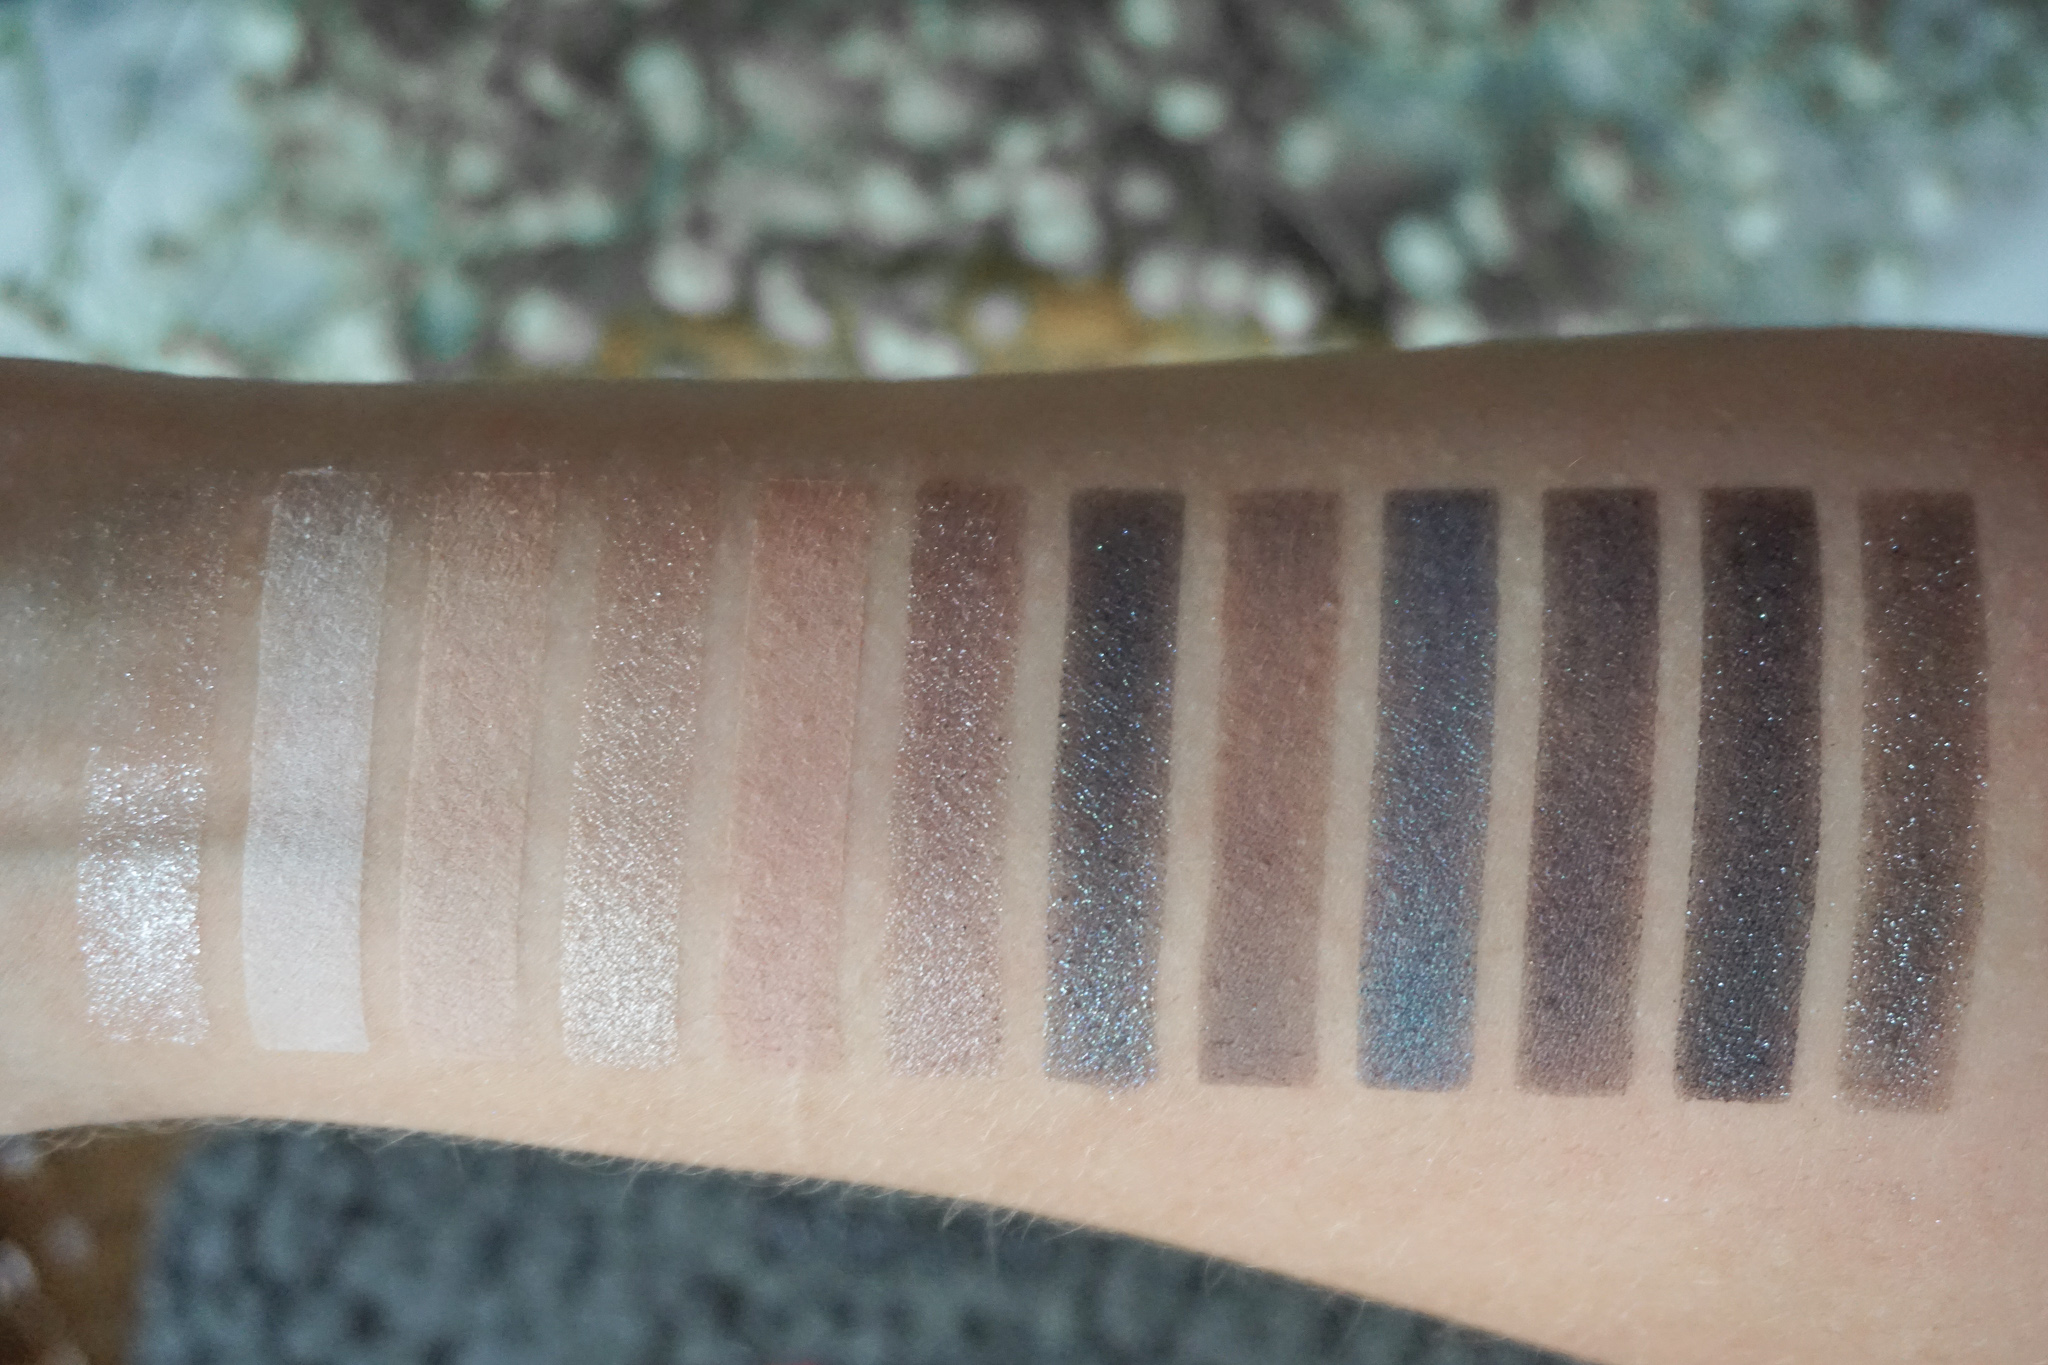 Sephora Feline Instict Dark Edition Swatches